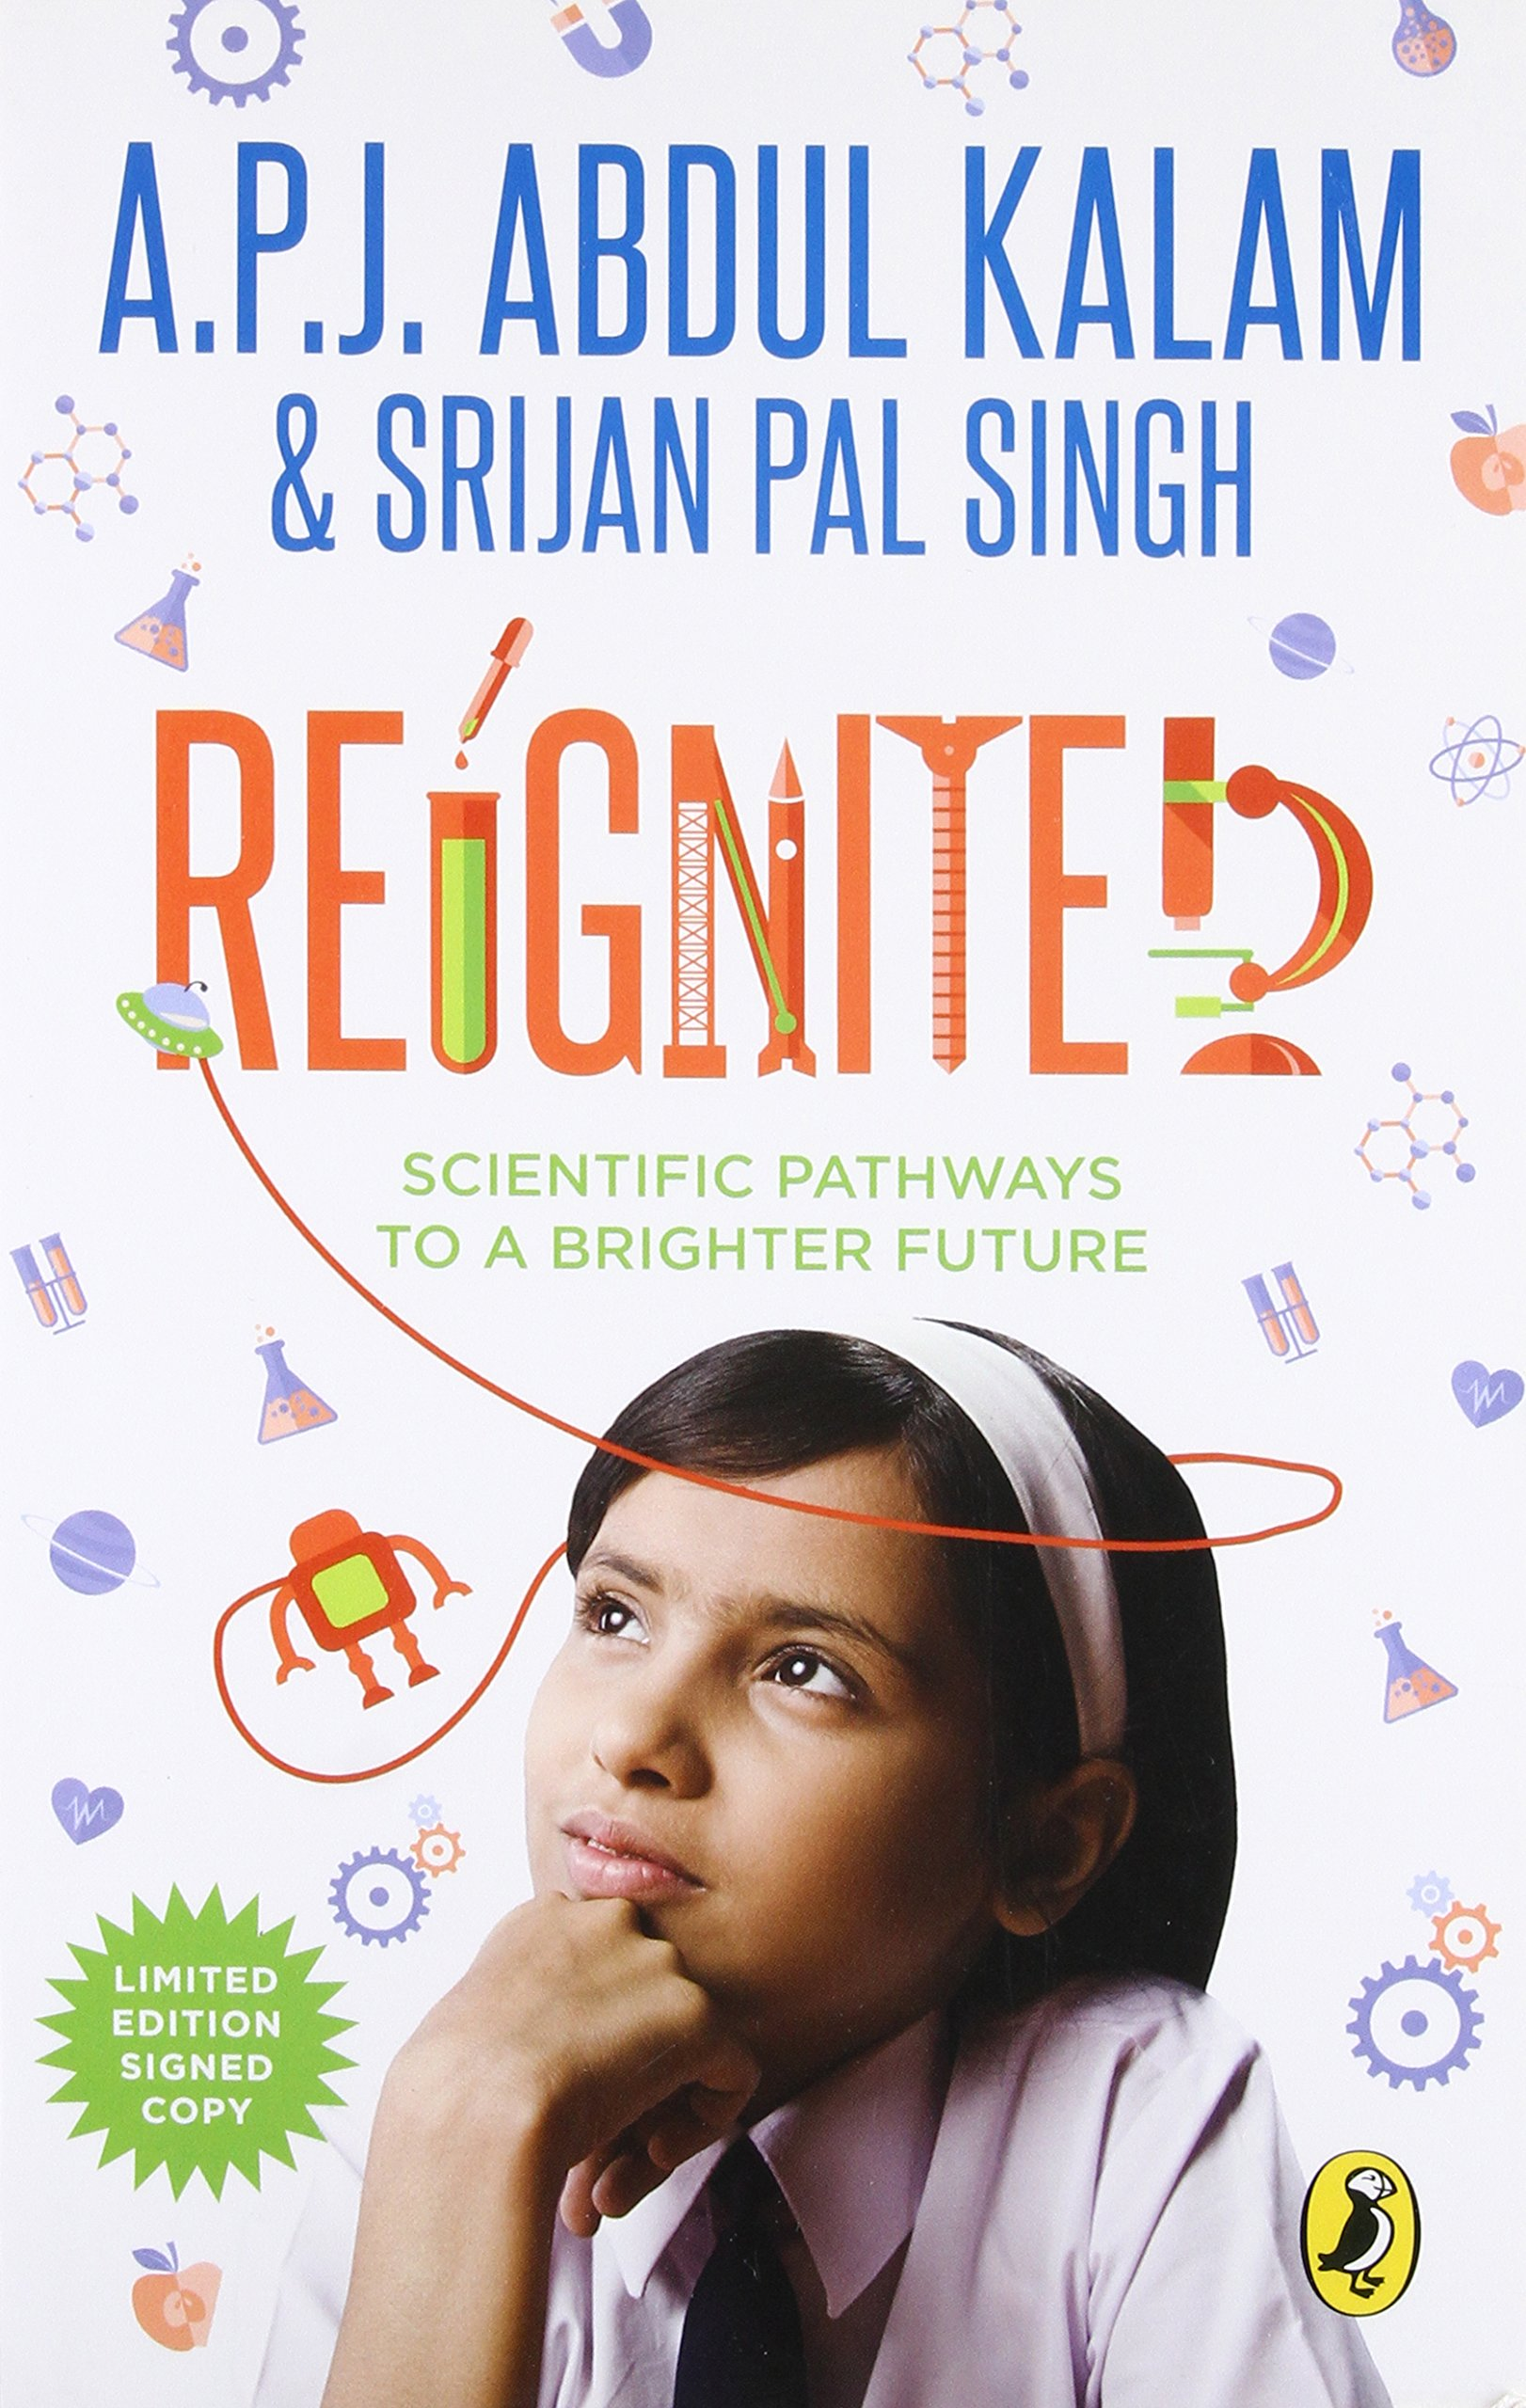 Reignited Scientific Pathways to a Brighter Future